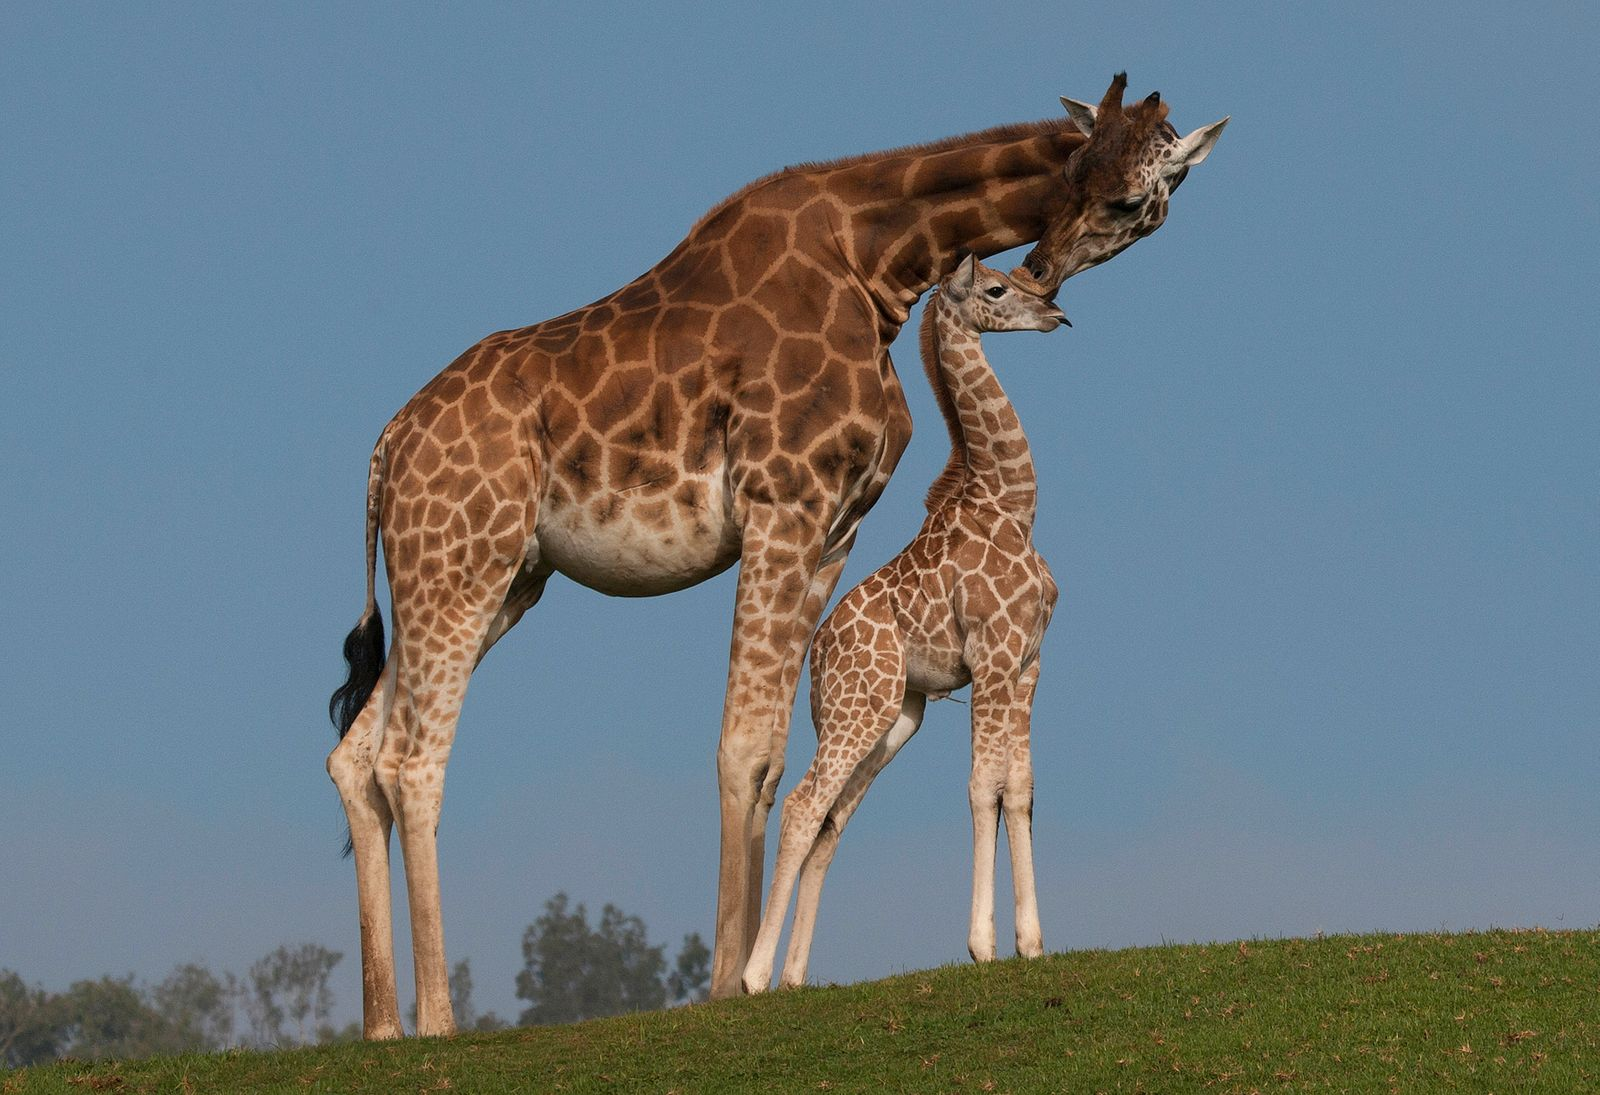 US-ANIMALS-Z00-GIRAFFE